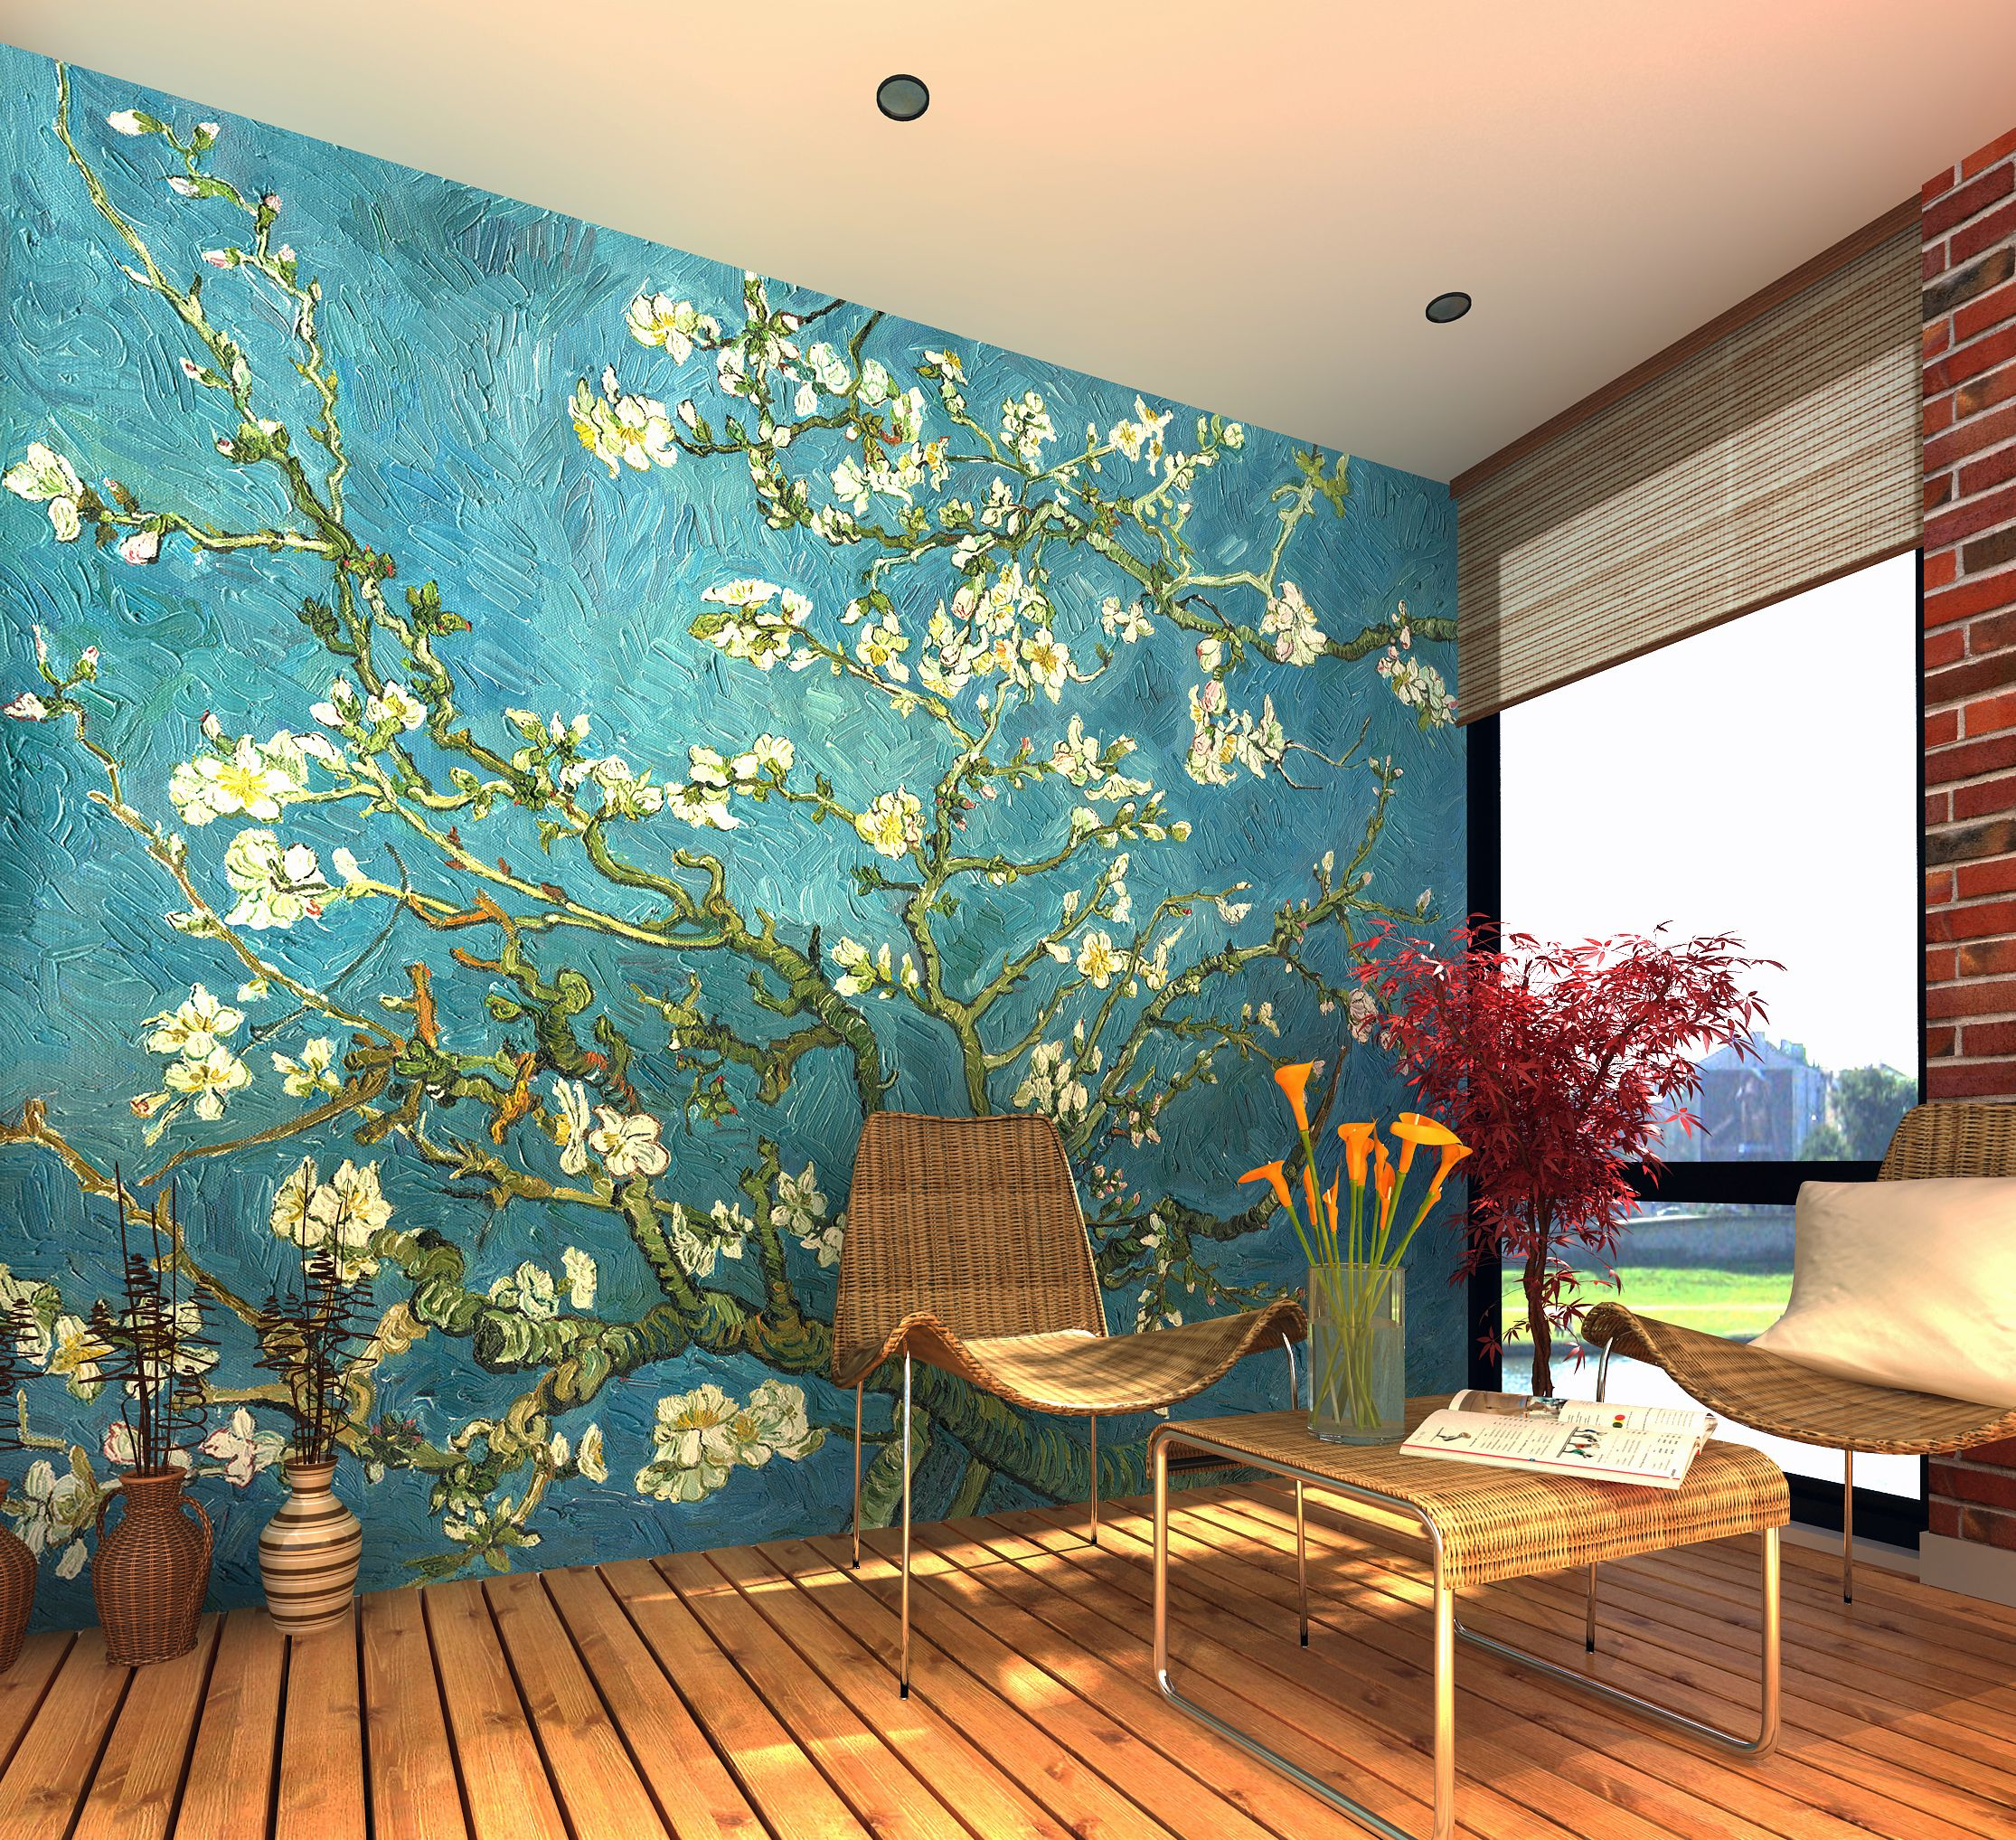 Van gogh almond blossom wall mural wallpaper for Wallpaper decoration for home